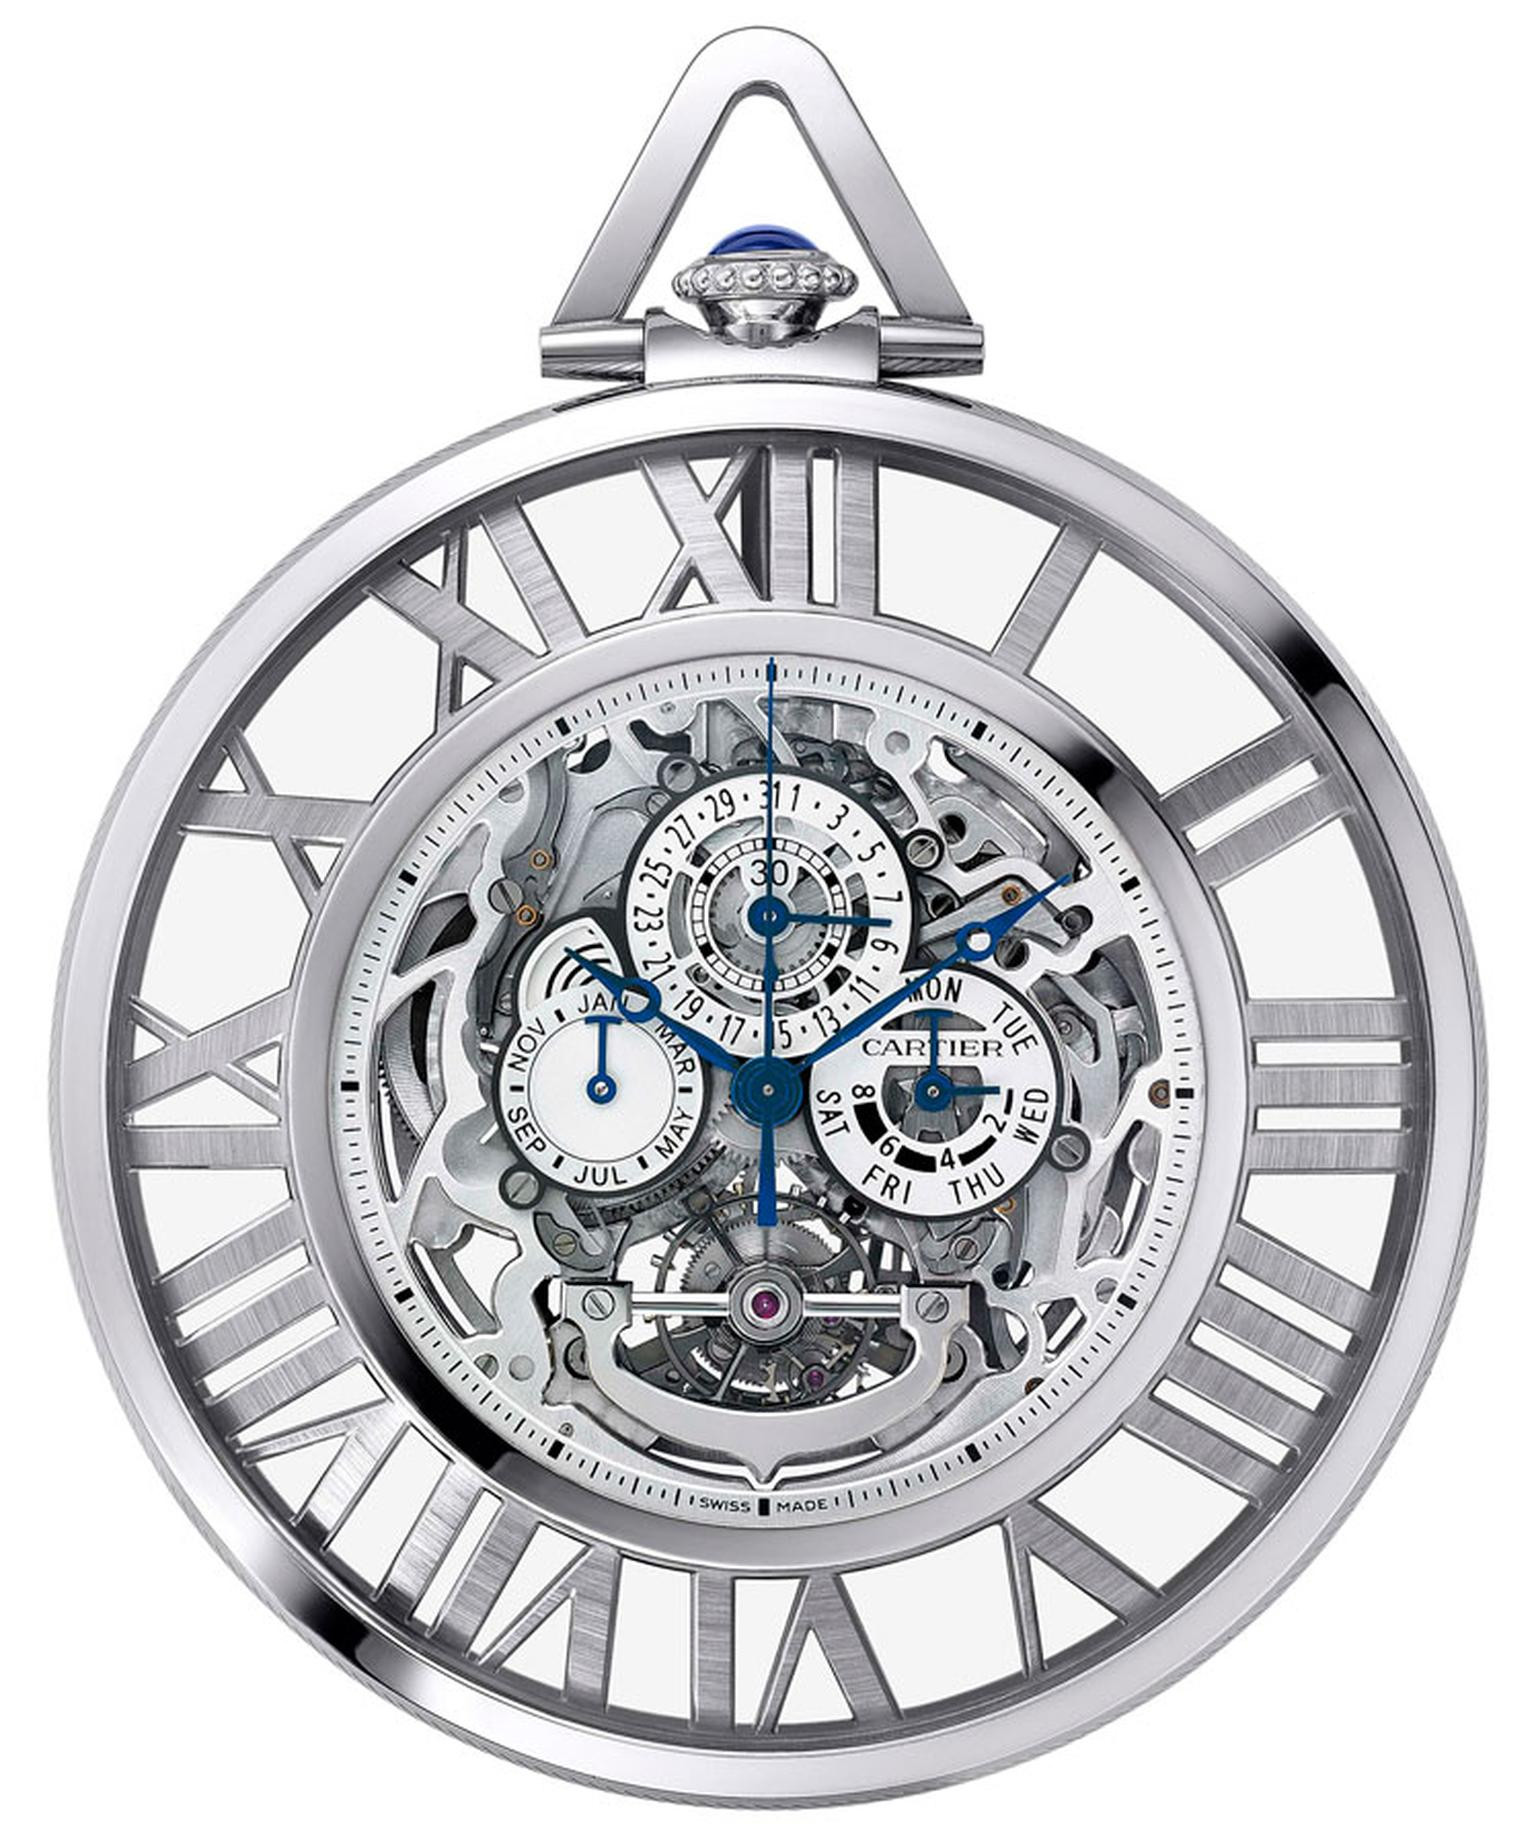 cartier. Grand Complication Skeleton pocket watch, calibre 9436 MC, 18-carat white gold. POA